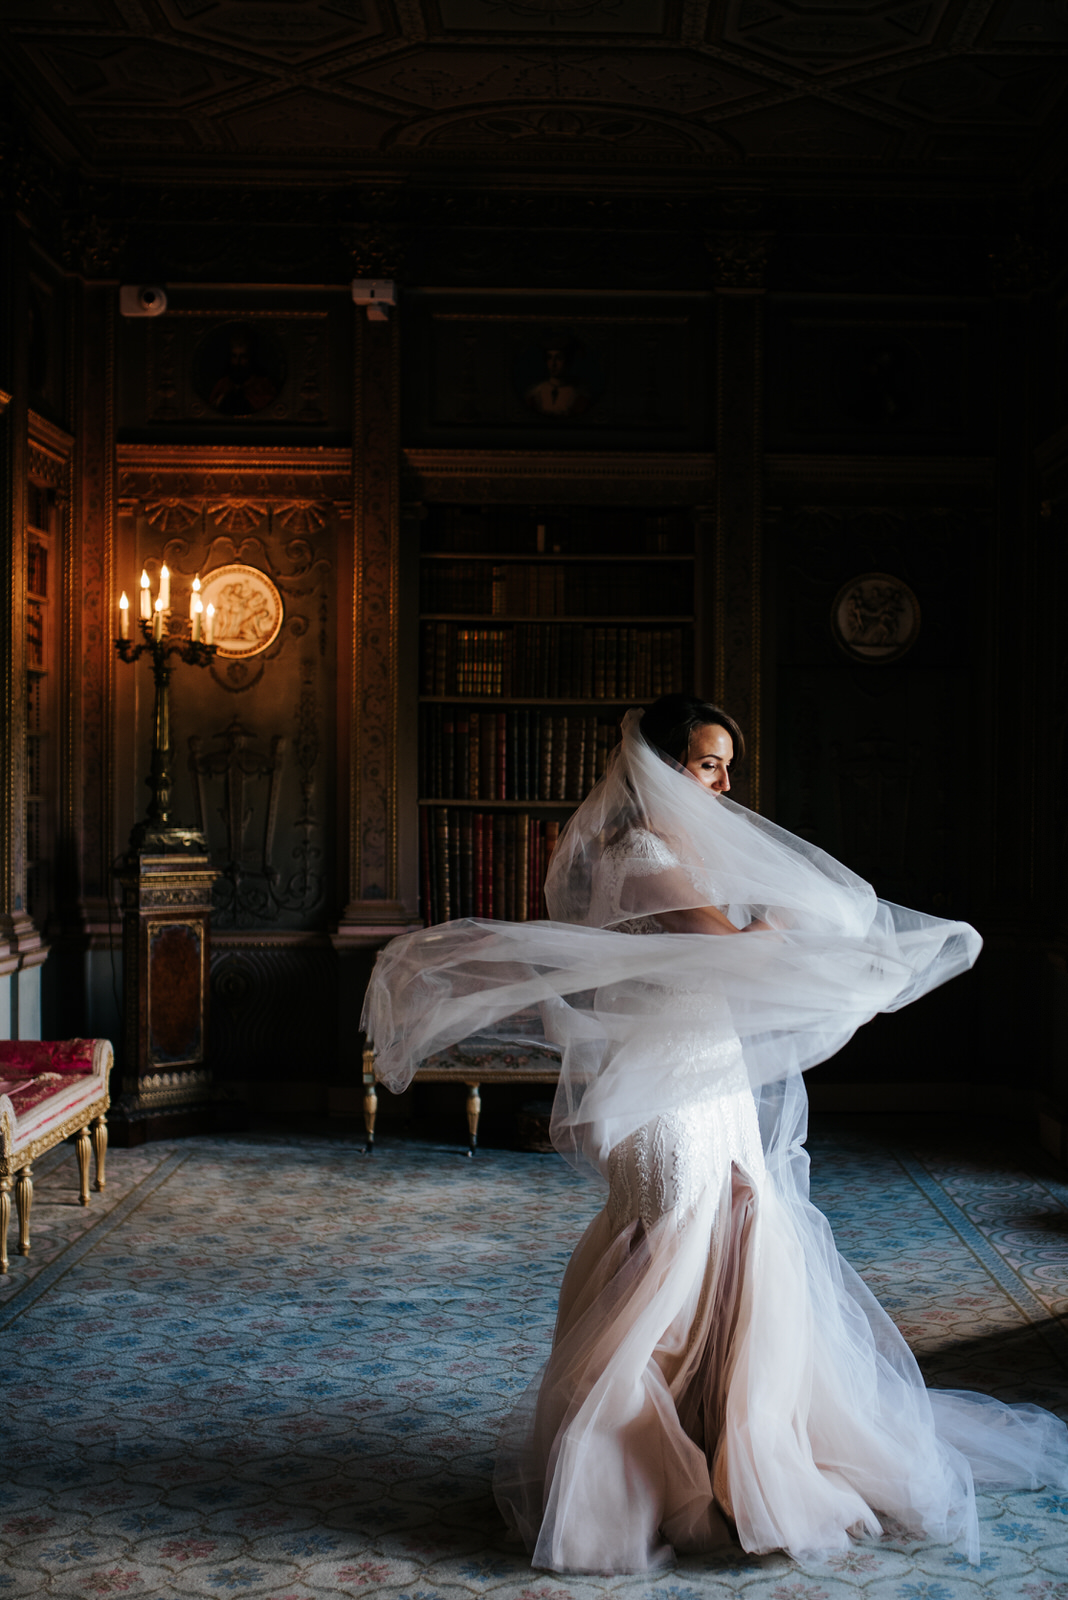 Bride twirls in her stunning dress and veil as light comes in from window